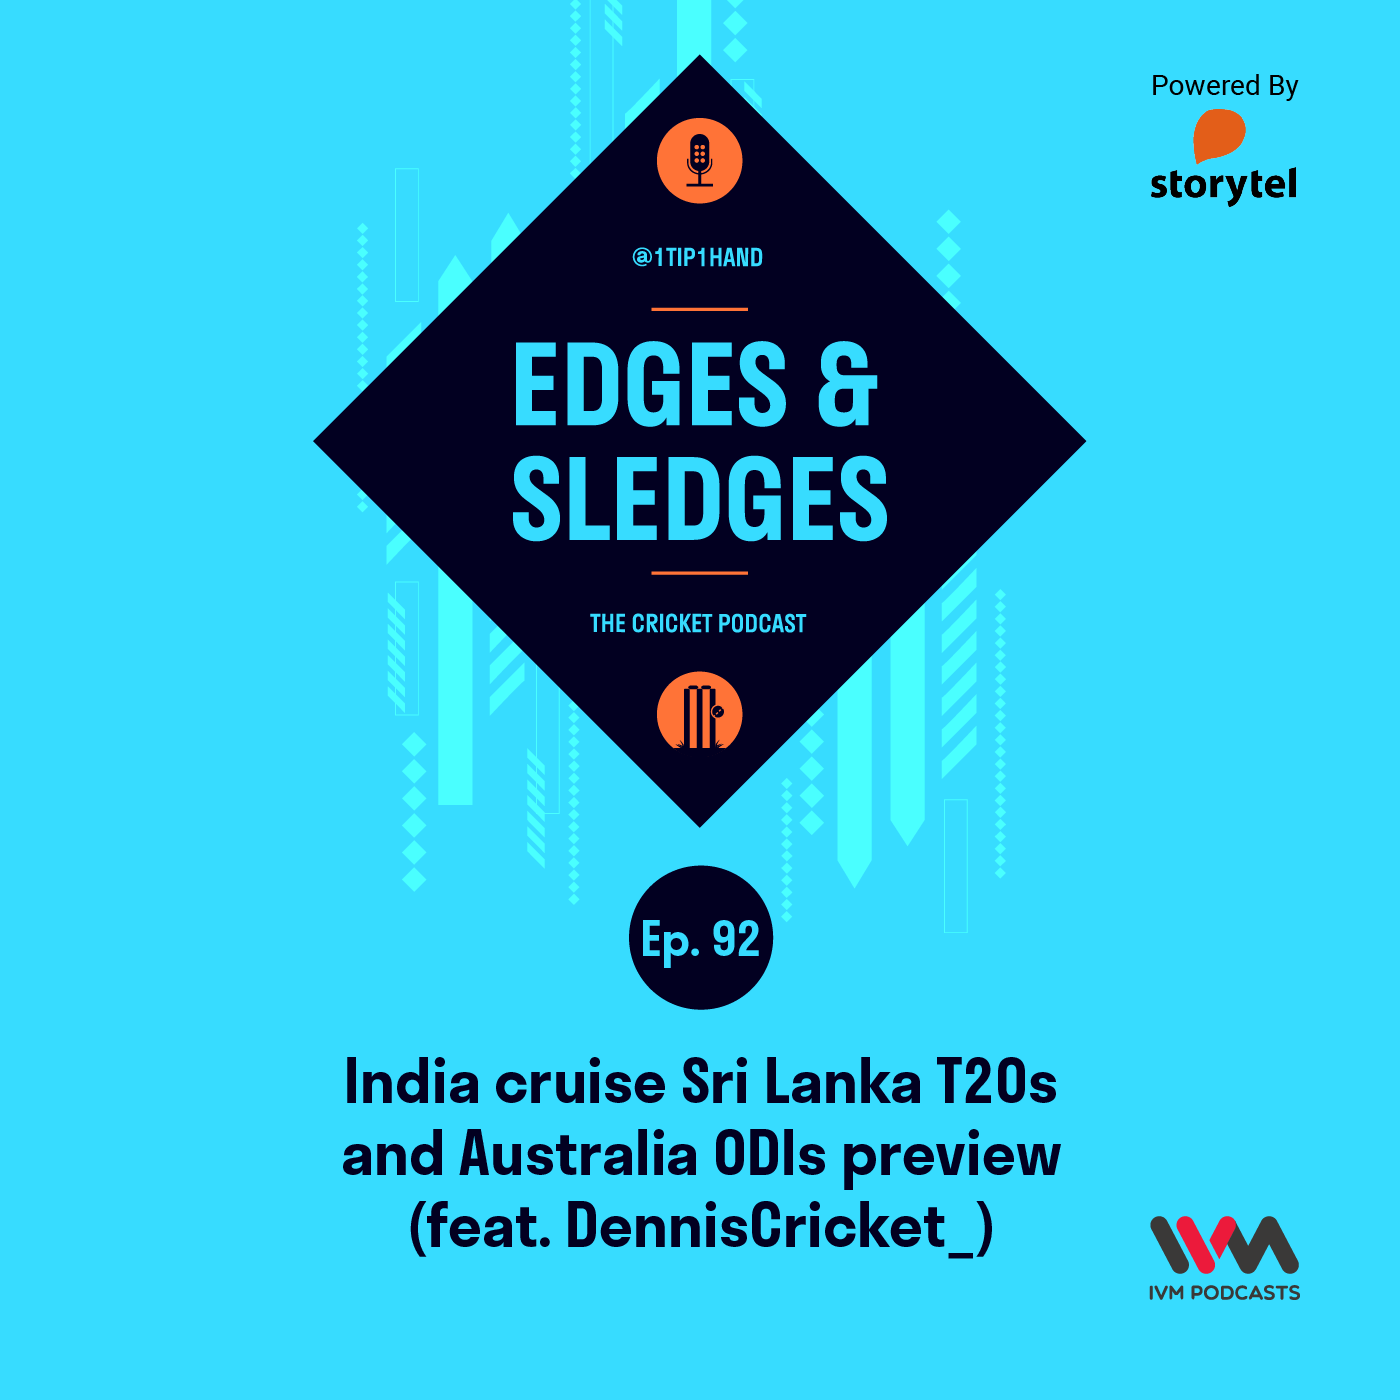 Ep. 92: India cruise Sri Lanka T20s and Australia ODIs preview (feat. DennisCricket_)